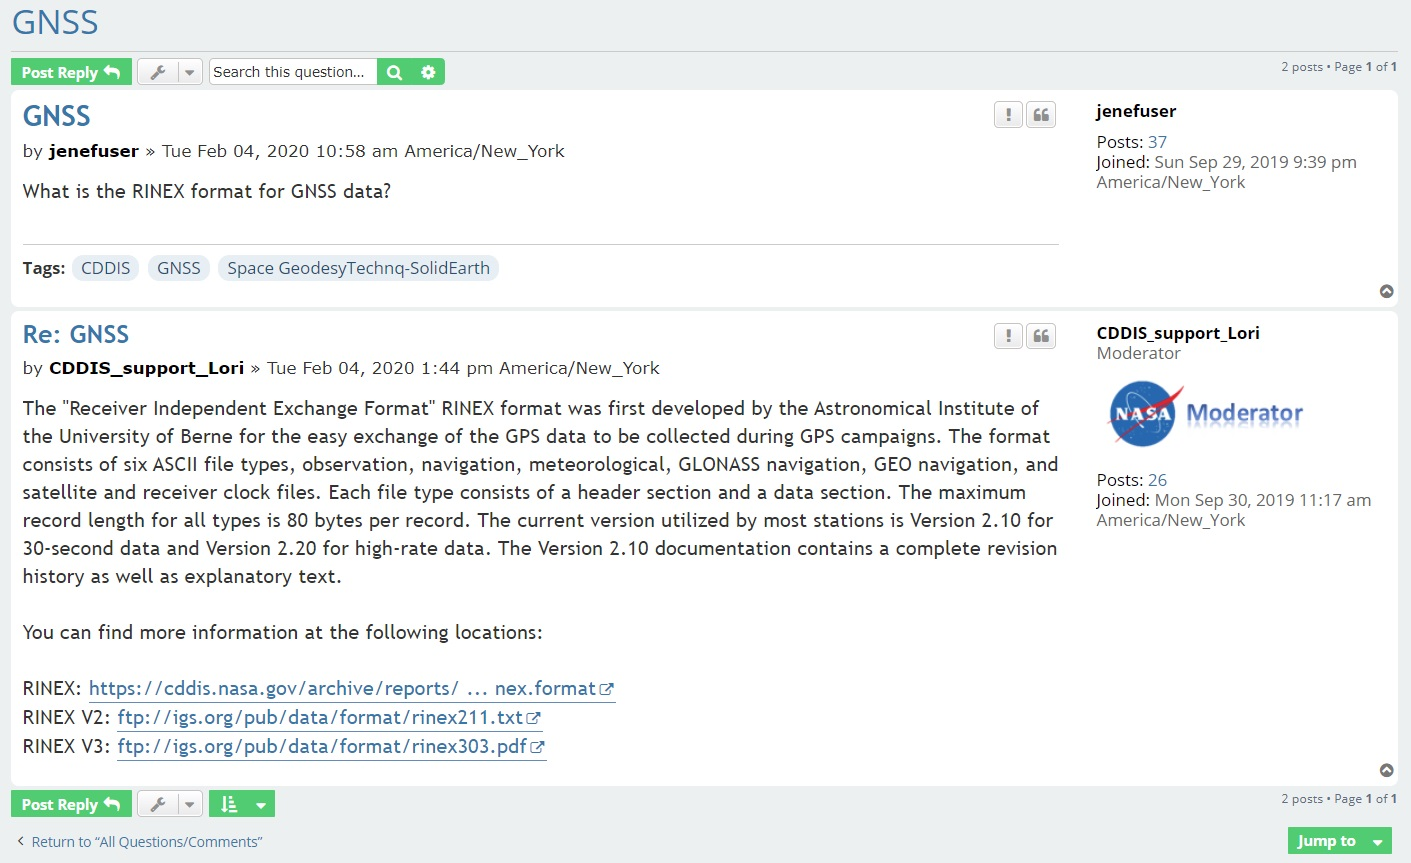 Screenshot of a question/response from Earthdata Forum. Question is related to GNSS and appears in the upper quarter of the rectangular box. A narrow box with question tags appears below the question box. Answer from CDDIS appears in a larger box under the narrow tag box with hyperlinks from CDDIS to more information at the bottom.